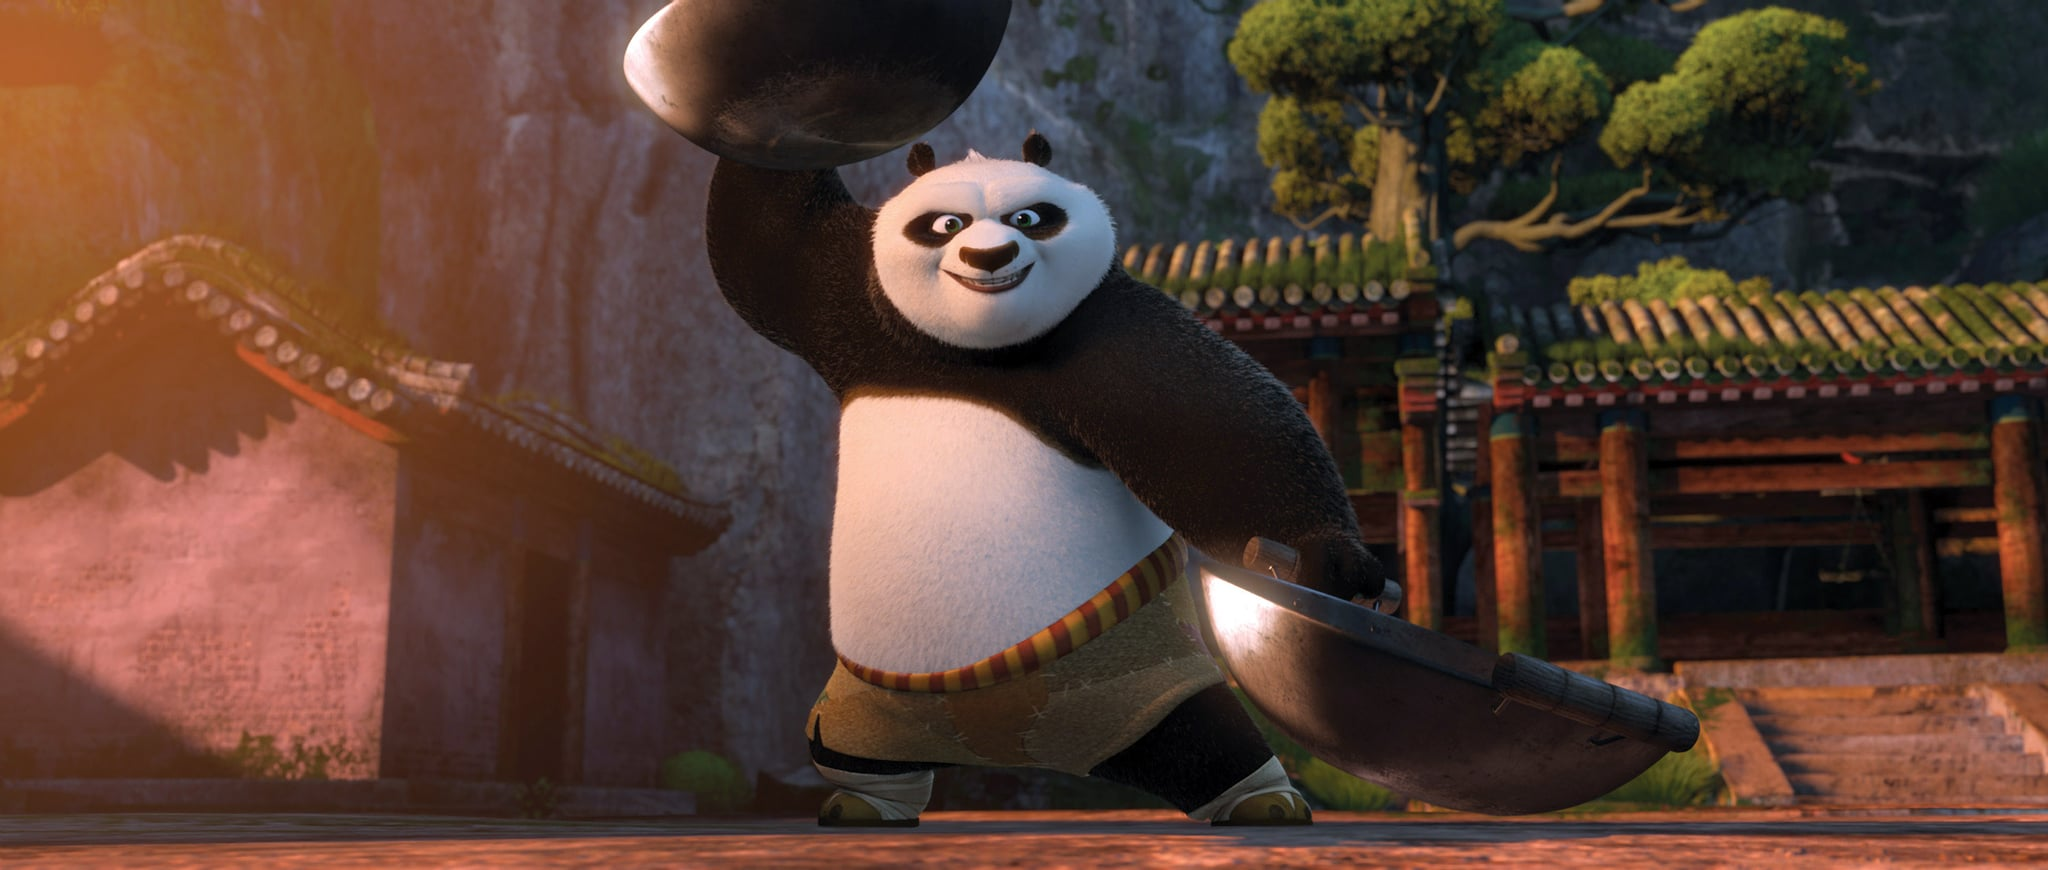 KUNG FU PANDA 2, Po (voice: Jack Black), 2011. Paramount Pictures/courtesy Everett Collection